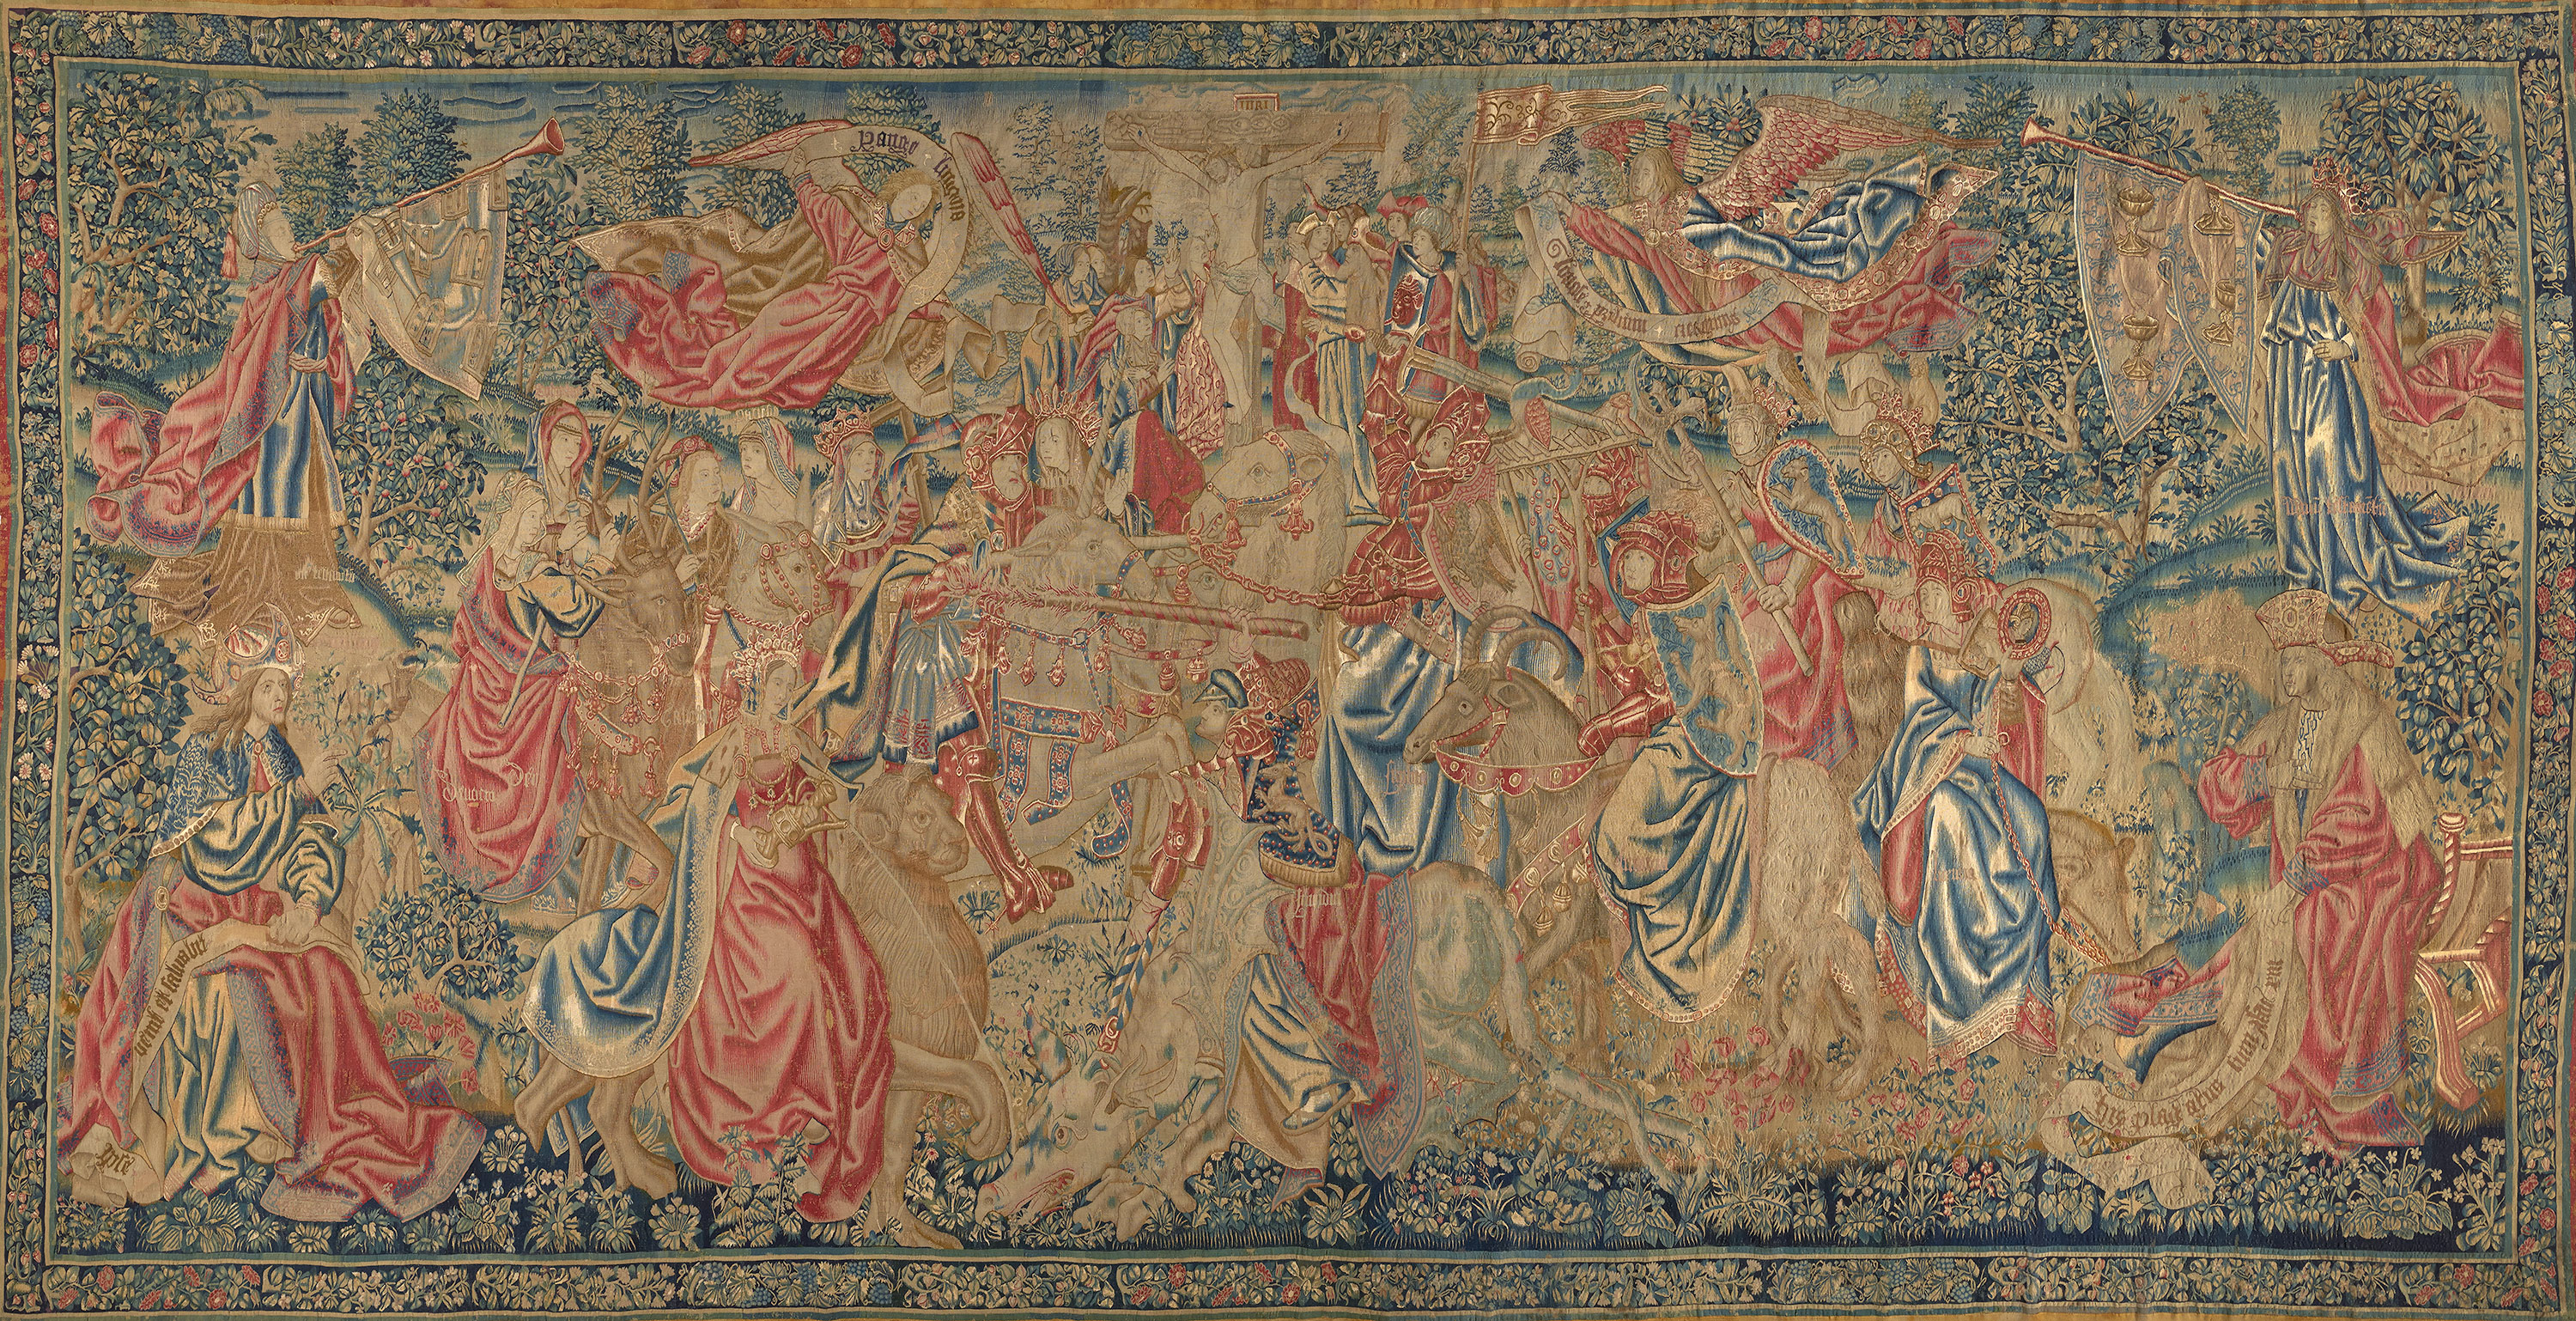 The Combat of the Virtues and the Vices from The Redemption of Man series, ca. 1535. Wool, silk; tapestry weave, 164 x 320 in. (416.6 x 812.8 cm). Fine Arts Museums of San Francisco, gift of The William Randolph Hearst Foundation, 54.14.1